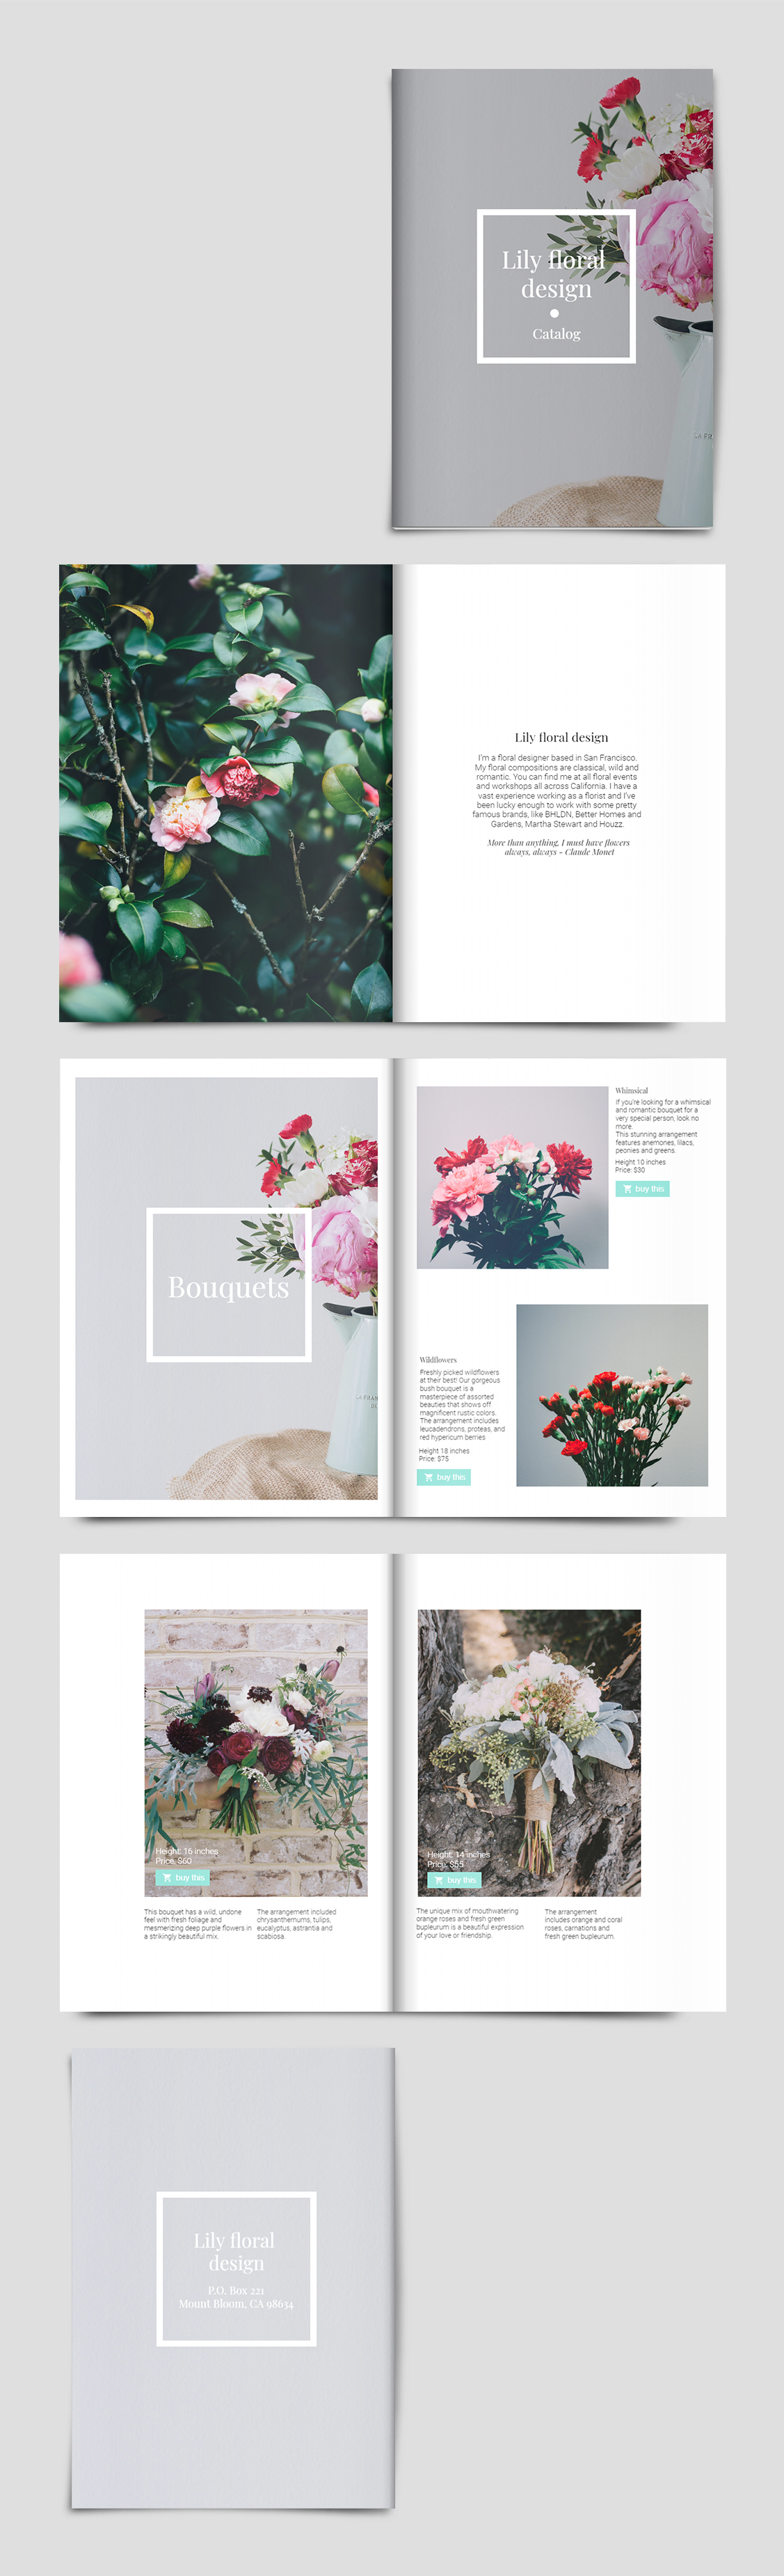 Online Catalog Template Flower Catalogs Catalogue Layout Catalog Design